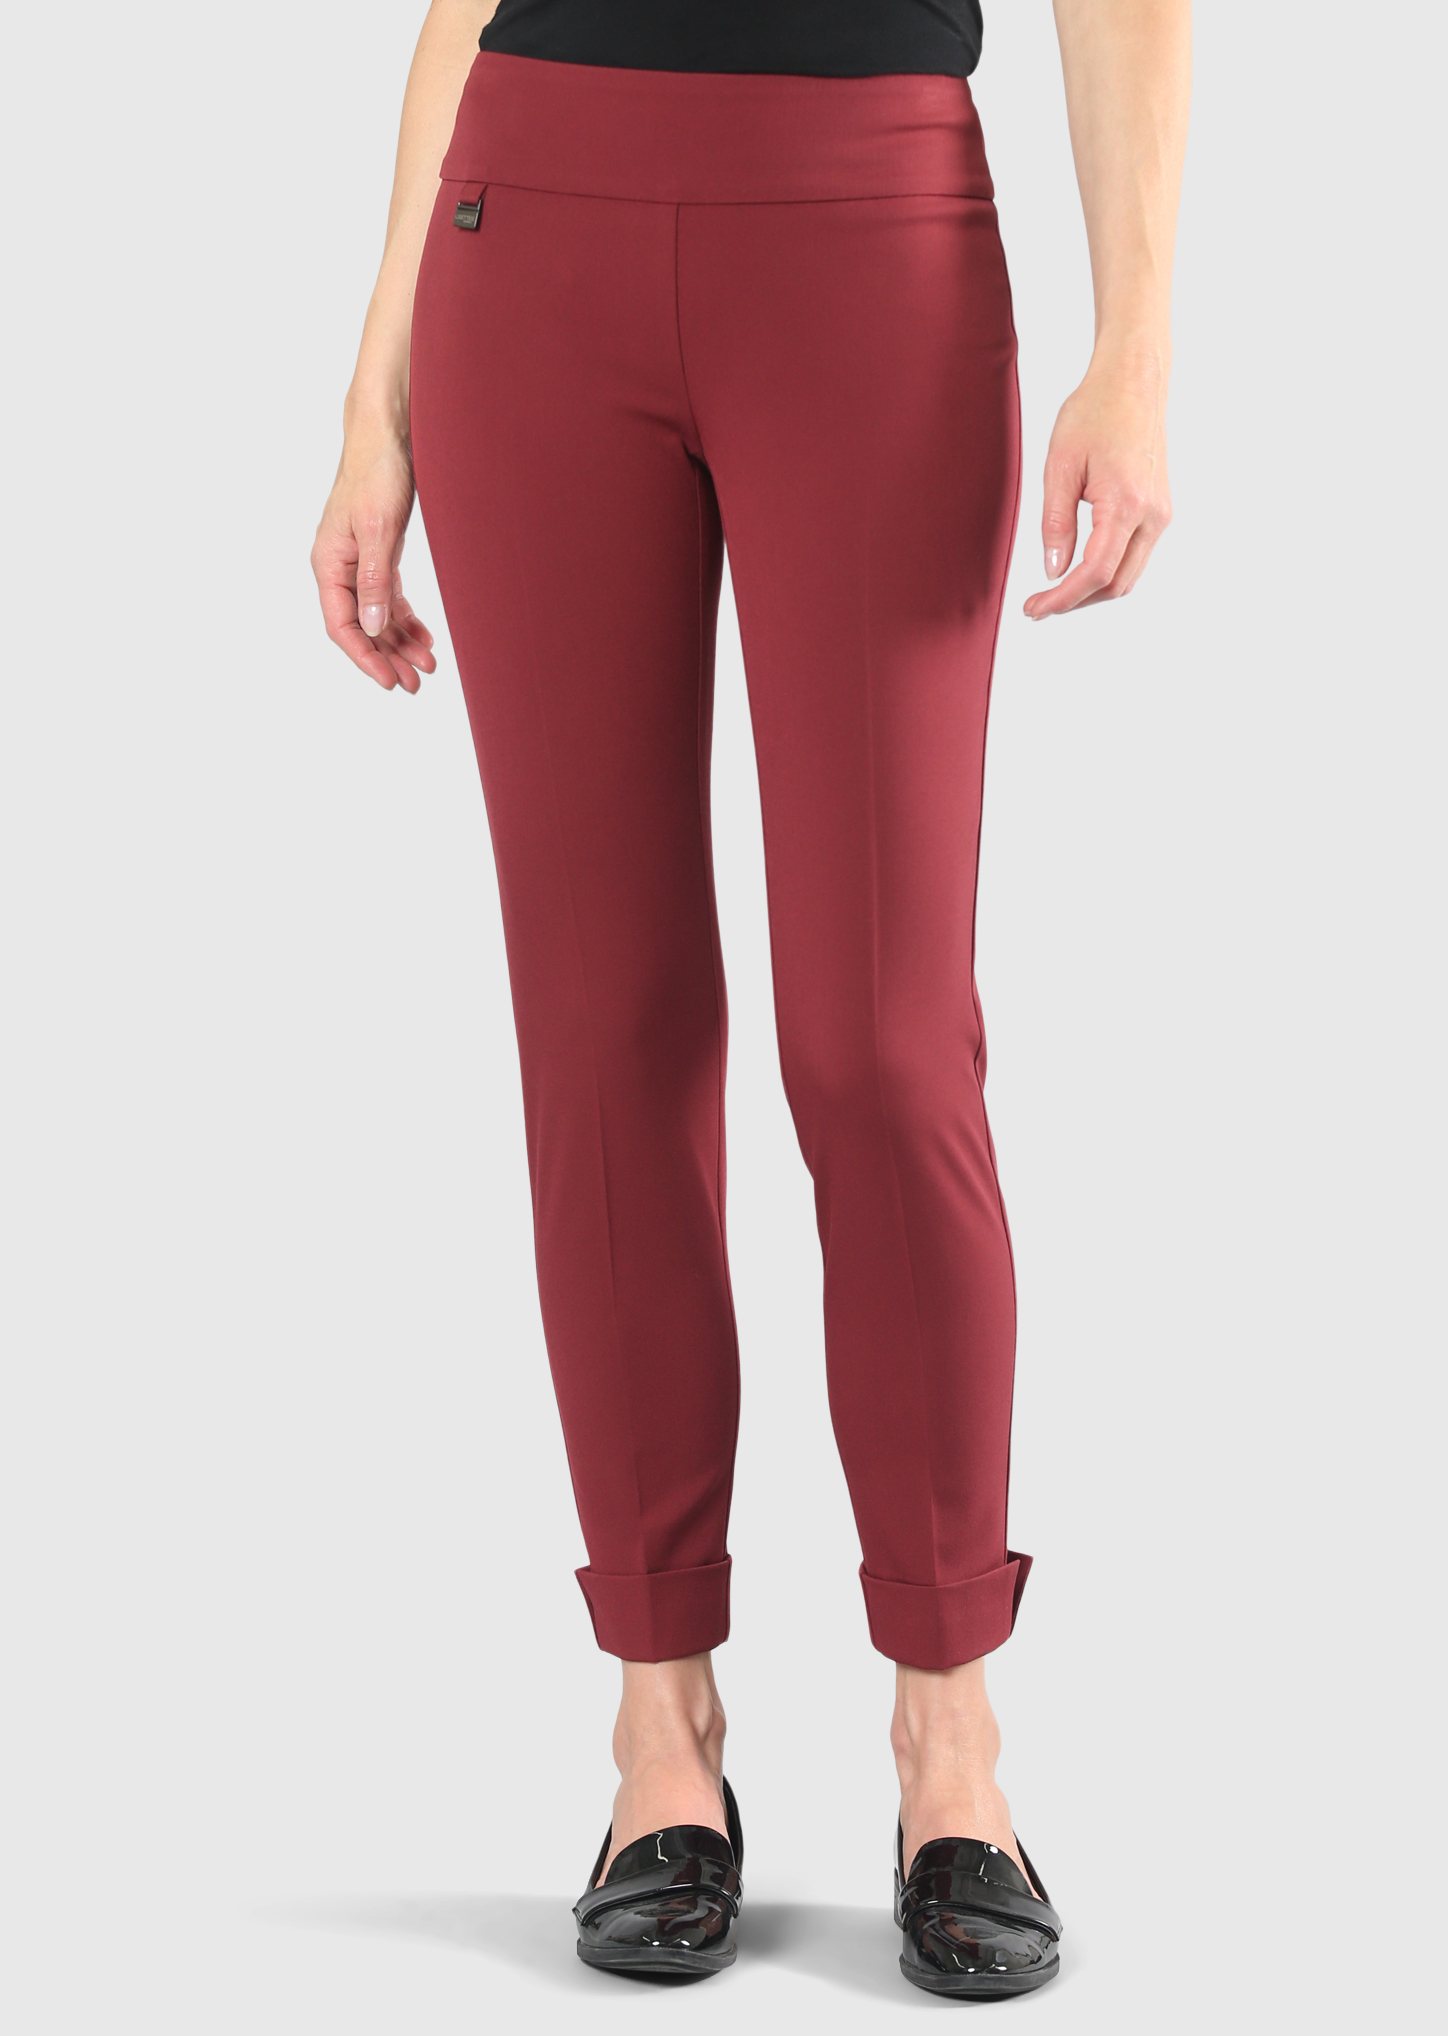 Lisette L. Slim Ankle Cuffed Pant Style 22617 Gaby Stretch Tweed Piping Color Rosewood